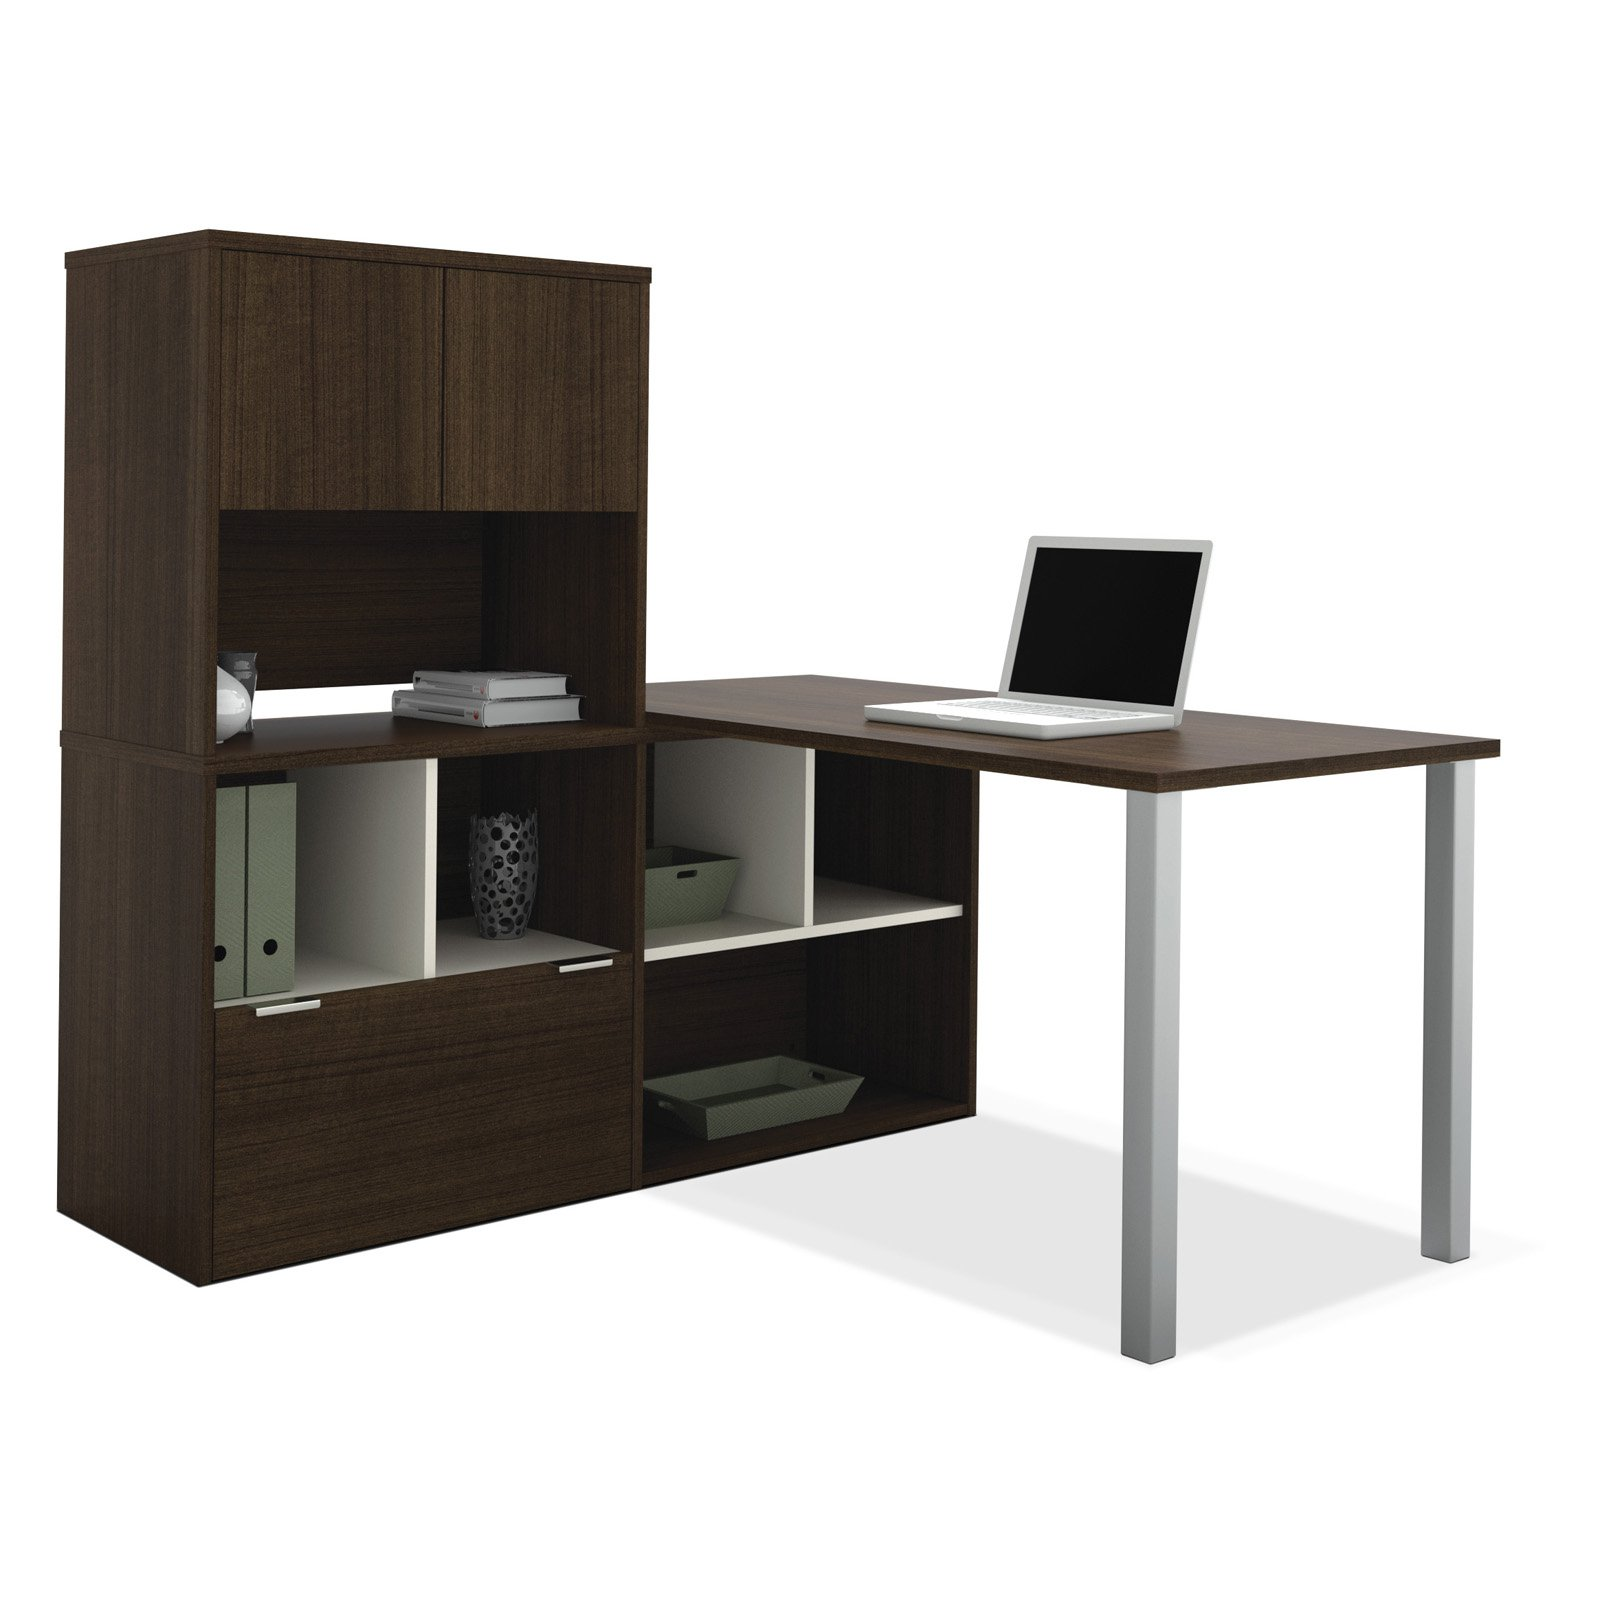 Bestar 50850-78 Contempo L-Shaped Desk with Storage Unit Tuxedo by Bestar